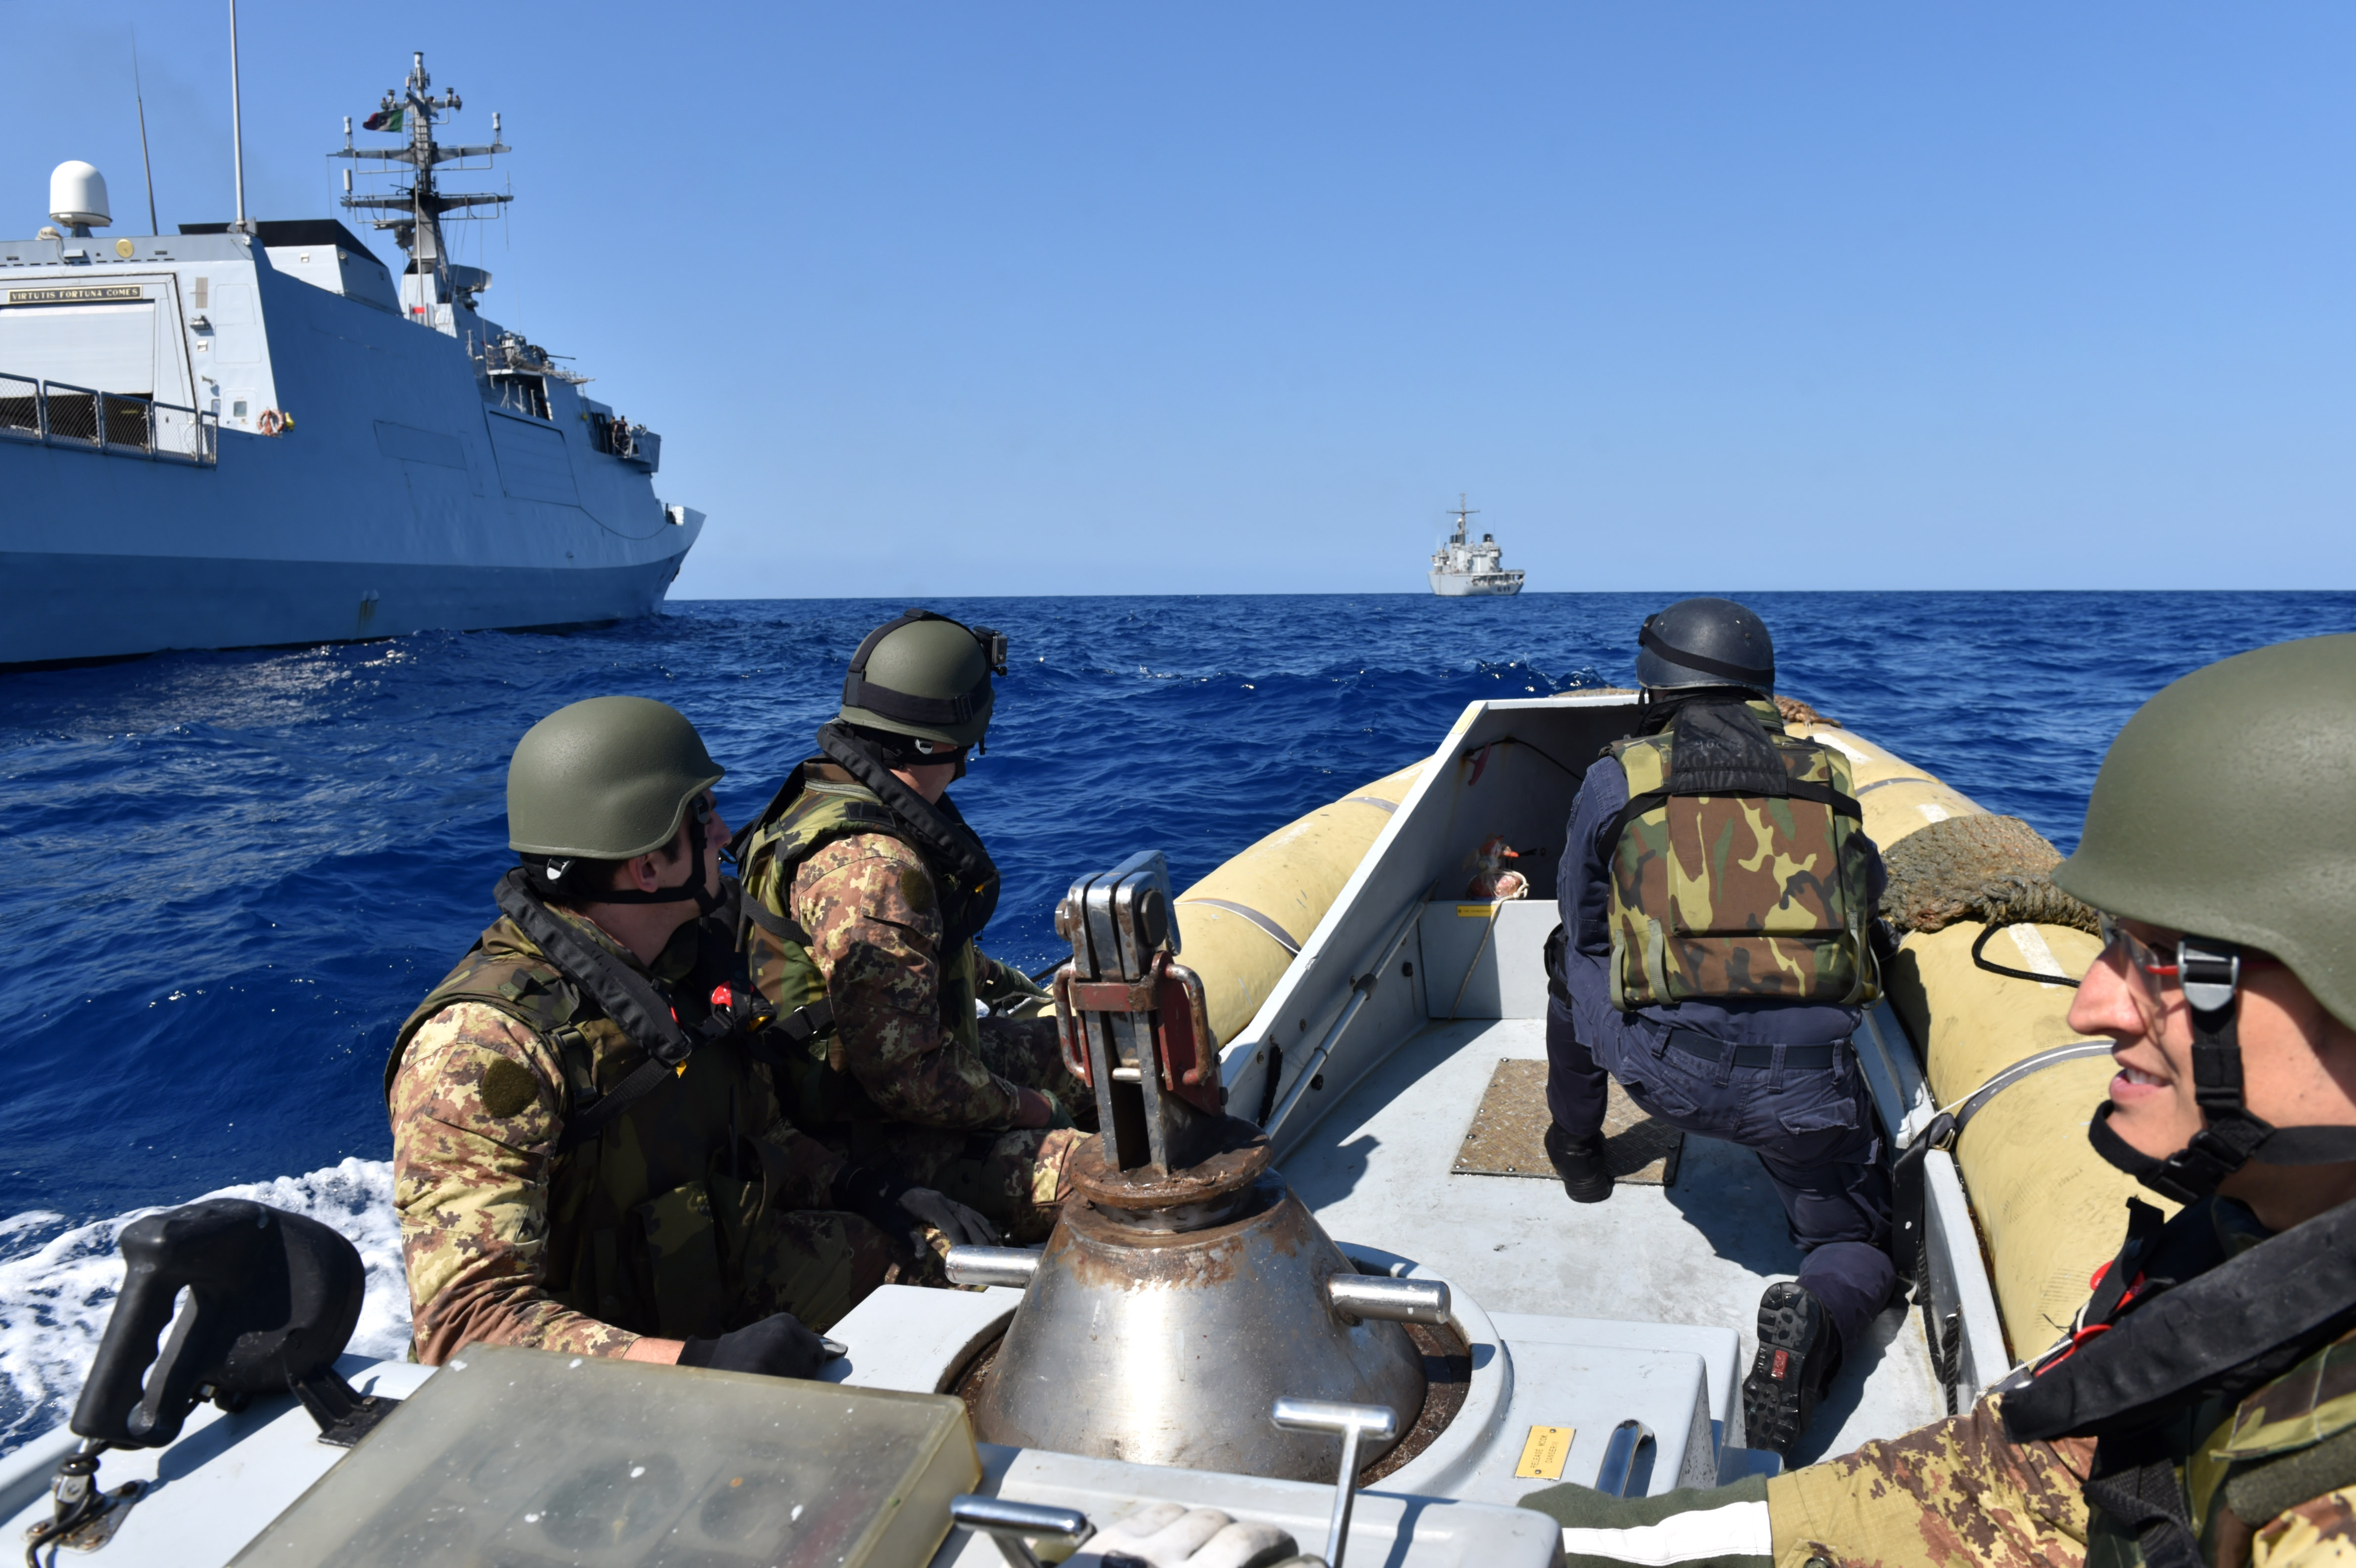 160525-N-XT273-217 MEDITERRANEAN SEA (May 25, 2016) Italian sailors and marines participate in a mock visit, board, search, and seizure boarding drill aboard the Royal Moroccan ship P611 during exercise Phoenix Express 2016, May 25. Phoenix Express is a U.S. Africa Command-sponsored multinational maritime exercise designed to increase maritime safety and security in the Mediterranean. (U.S. Navy photo by Mass Communication Specialist 2nd Class Justin Stumberg/Released)